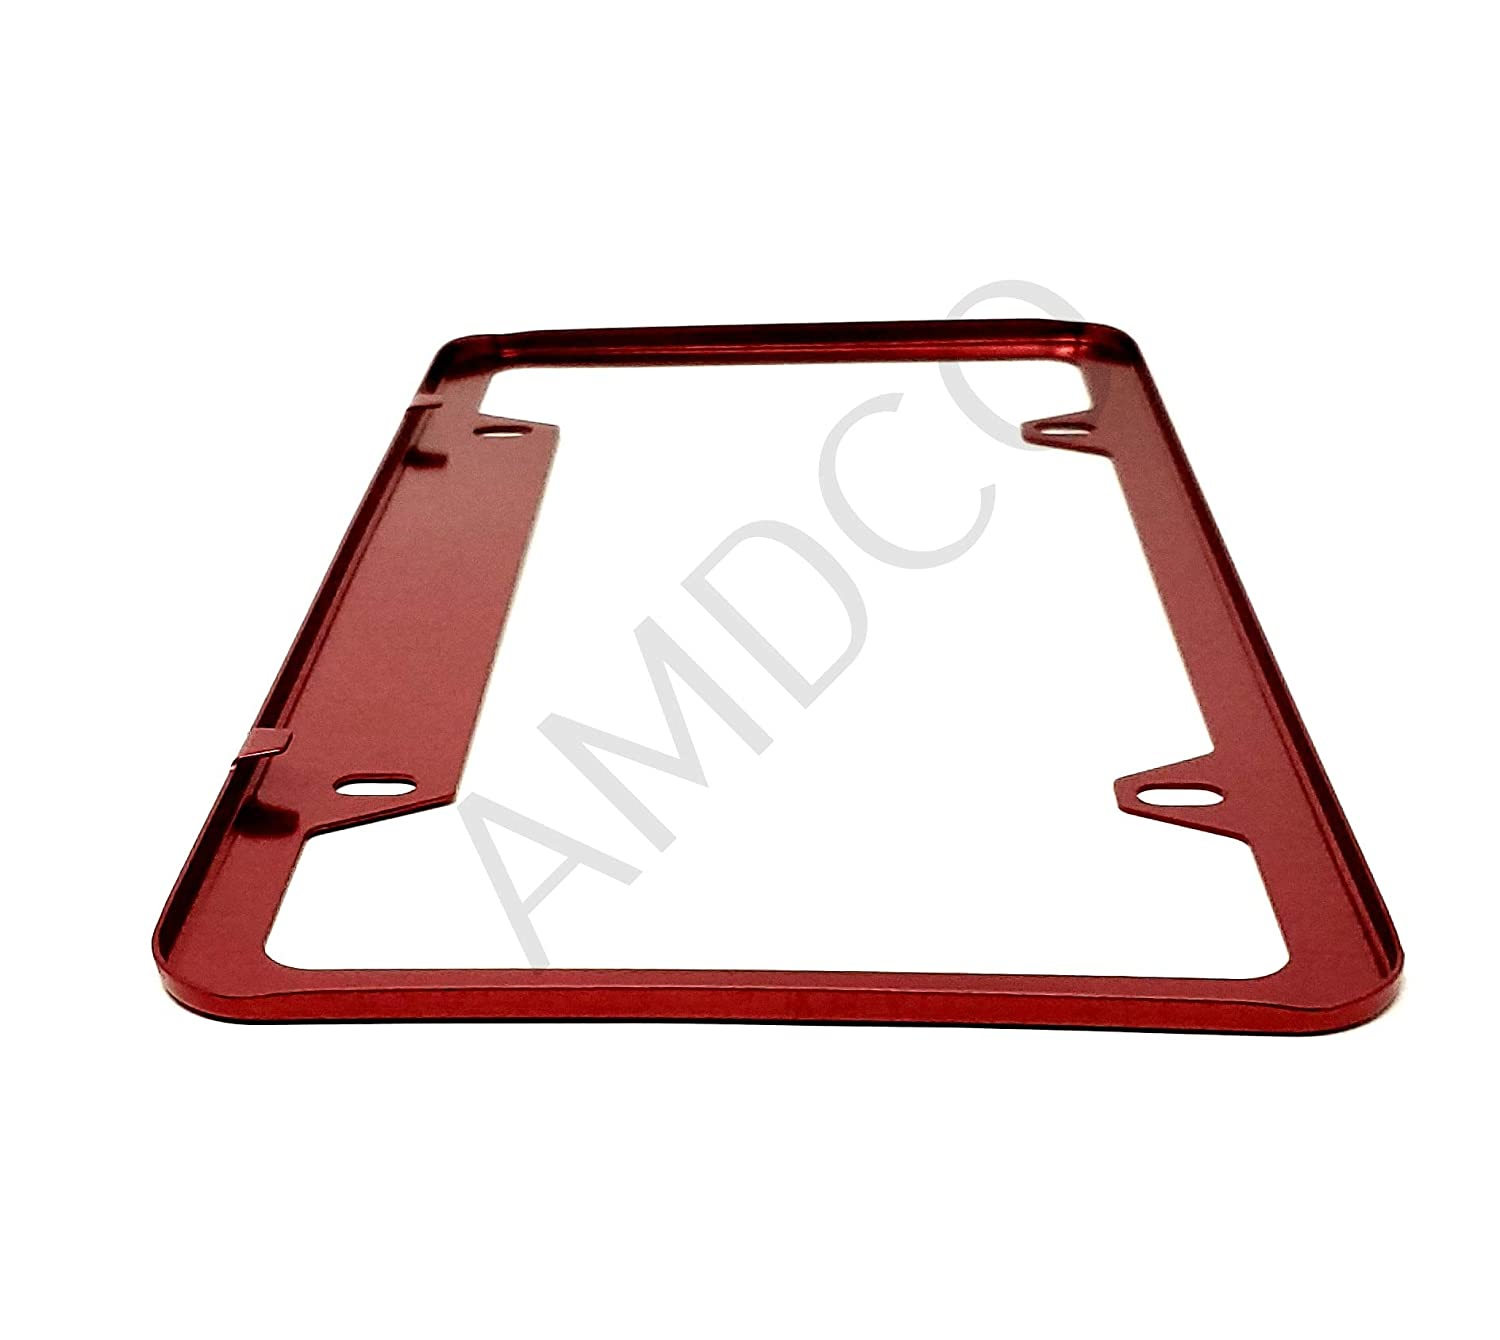 Pack of 1 AMDCO RED for Cummins Magnum V8 V6 5.7 6.4 V10 License Plate Cover Holder Frame Badge Stickers Decals with Strong 3M Includes Instructions Measure Before Purchase Fitment